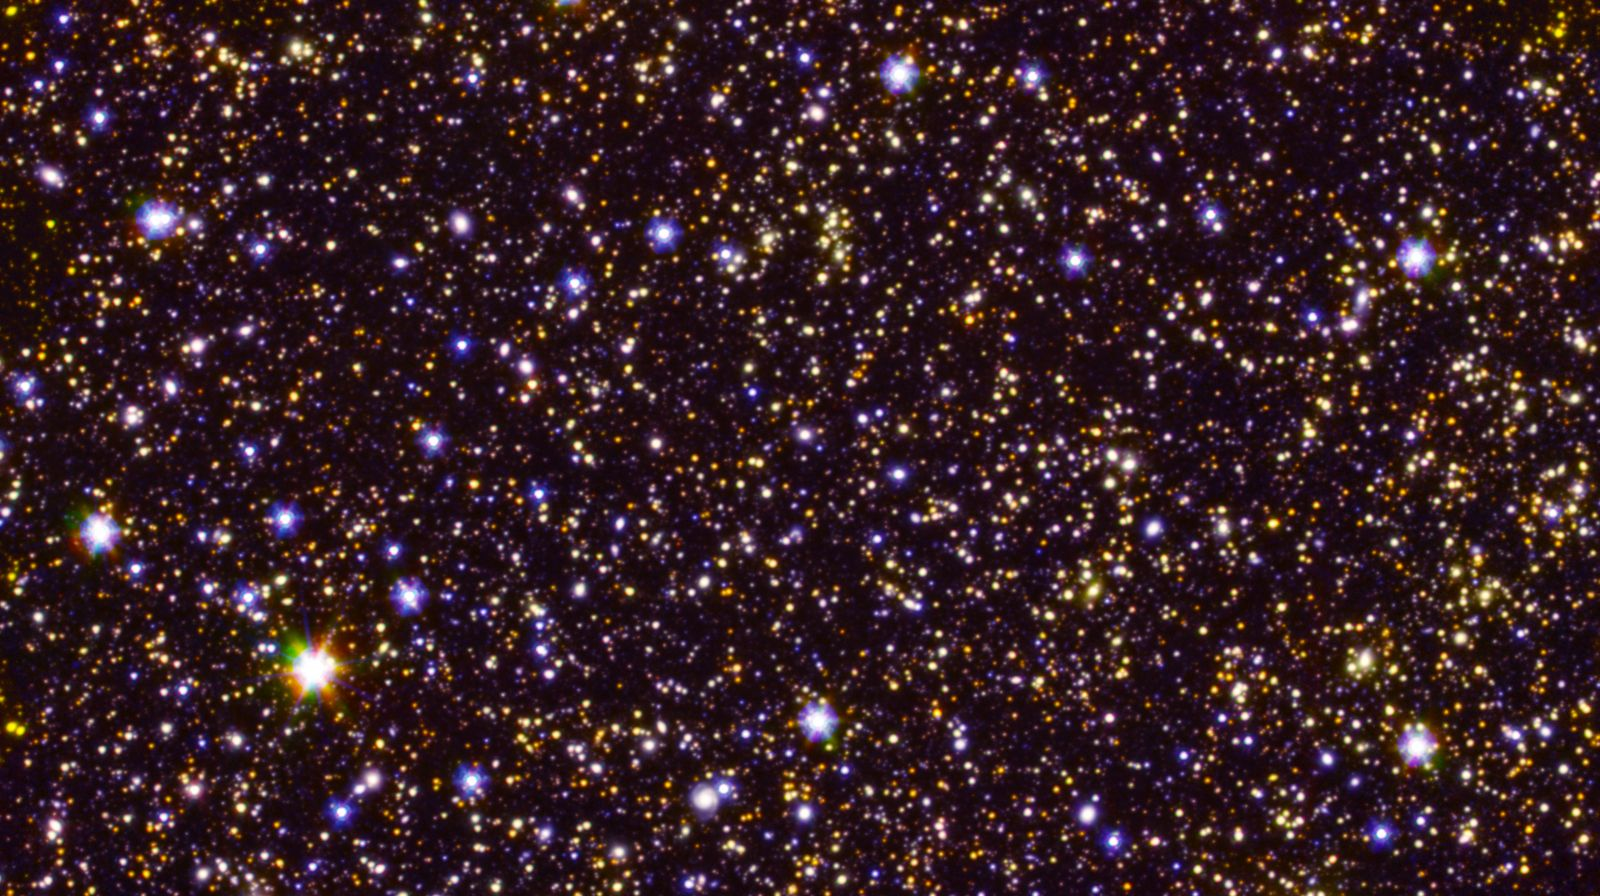 A deep-field view of the sky taken by NASA's Spitzer Space Telescope shows many faint, distant galaxies. Photo Credit: NASA/JPL-Caltech/ESA/Spitzer/P. Oesch/S. De Barros/I.Labbe